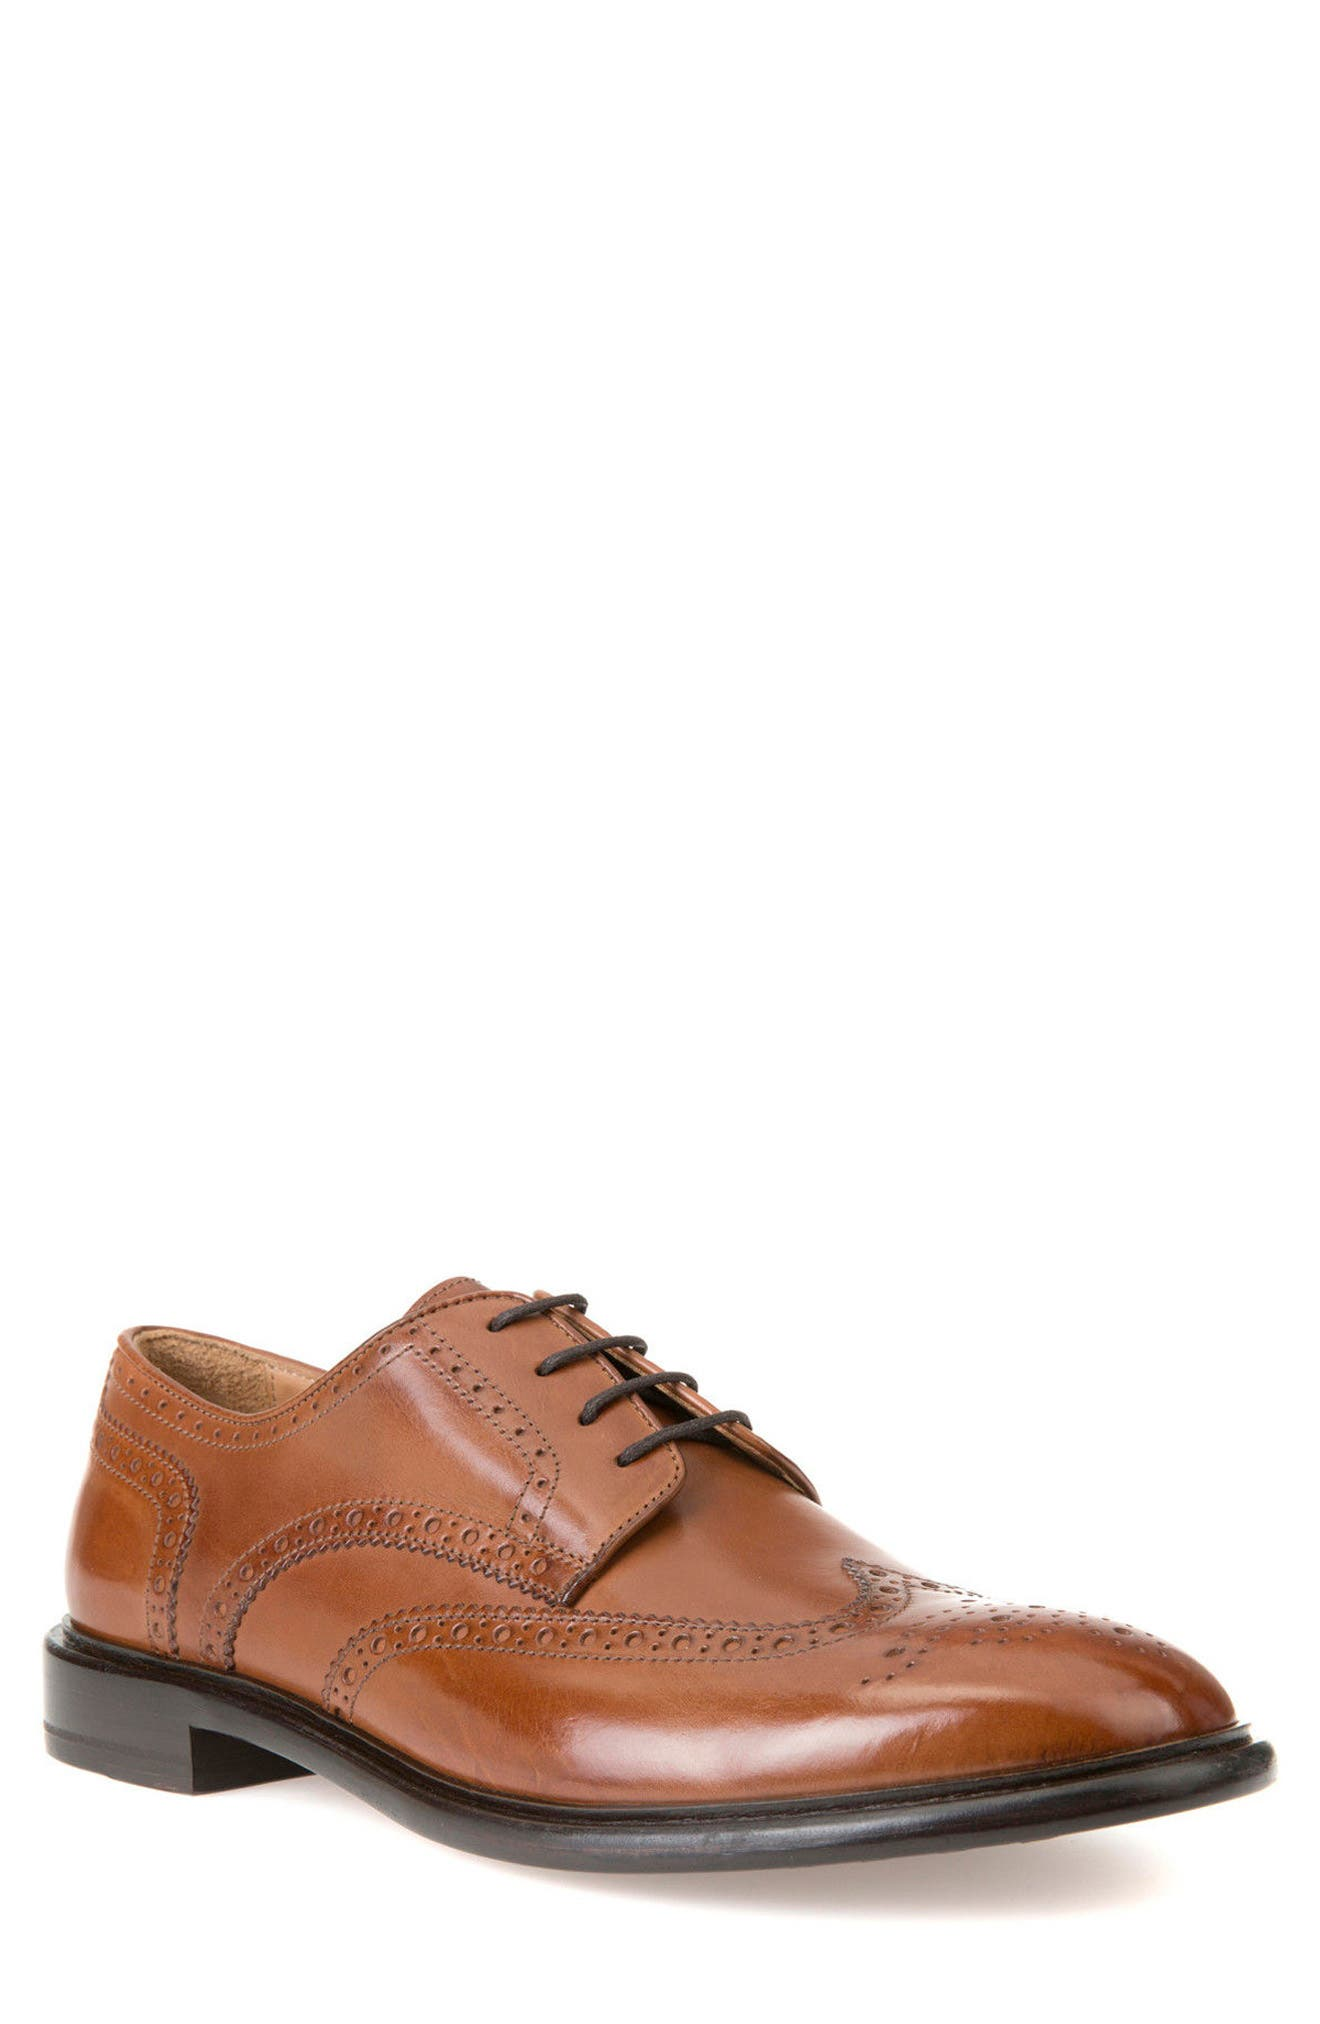 Guildford 4 Wingtip,                         Main,                         color, 204